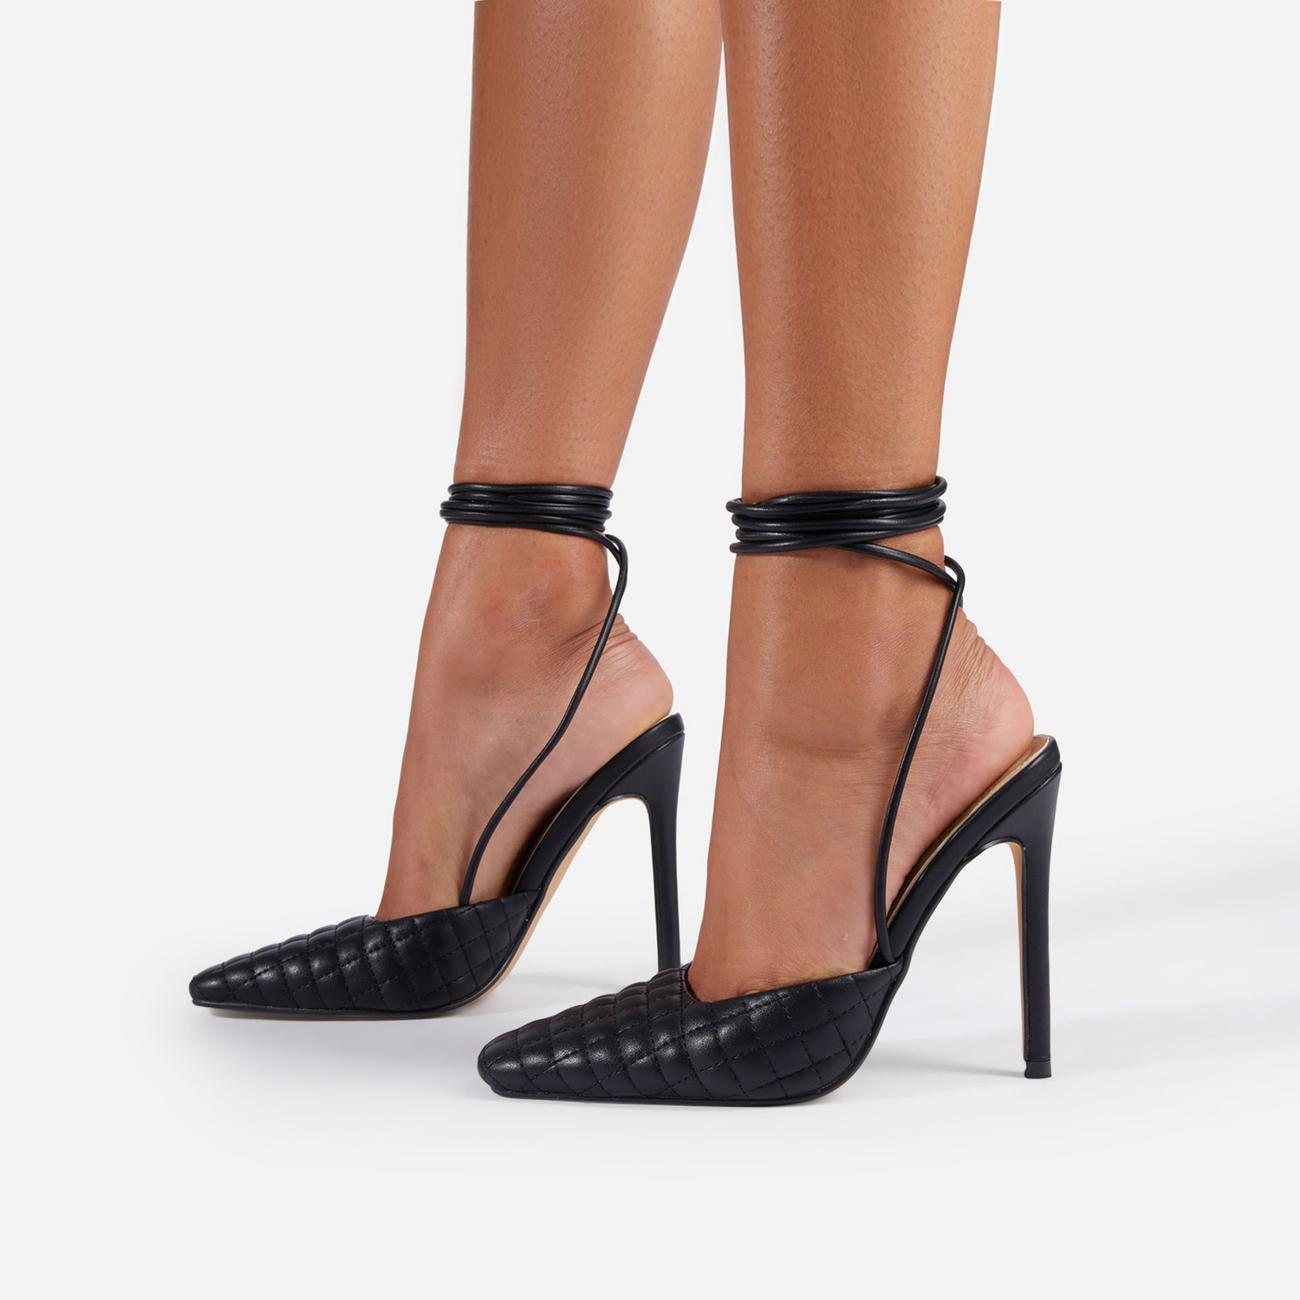 Lifted Lace Up Quilted Pointed Toe Court Heel In Black Faux Leather Image 2